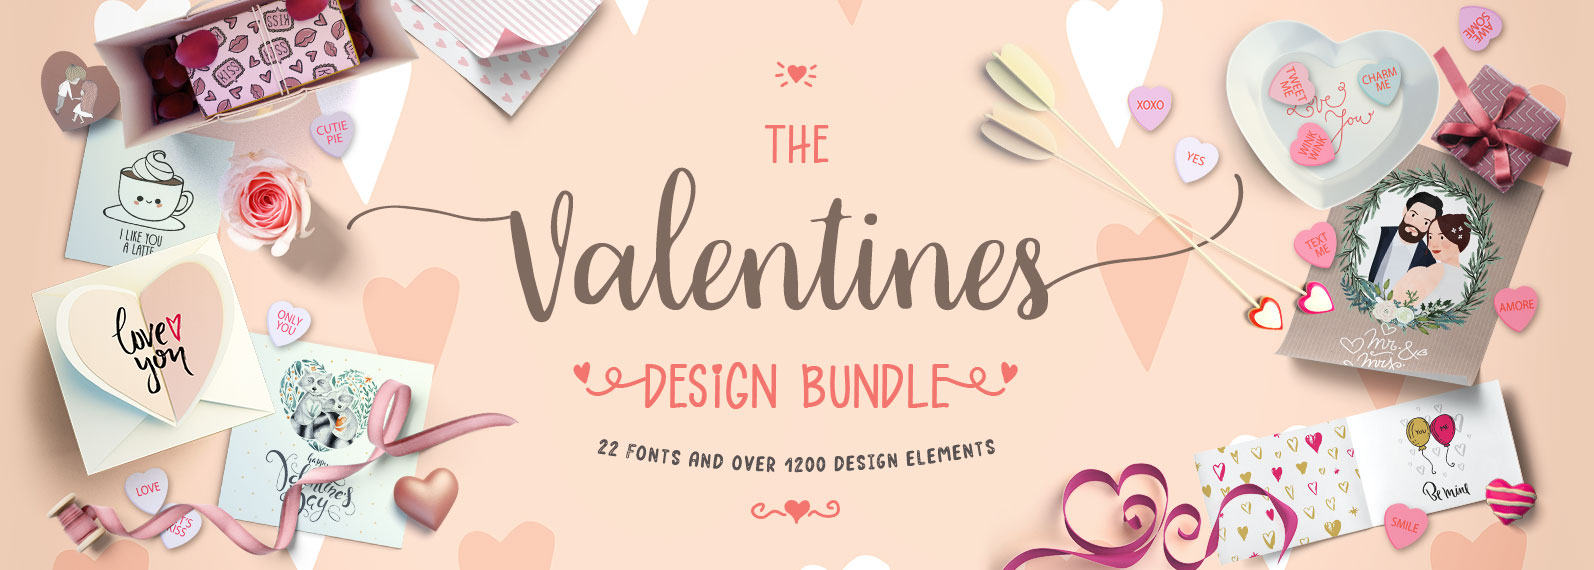 The Valentines Design Bundle Cover